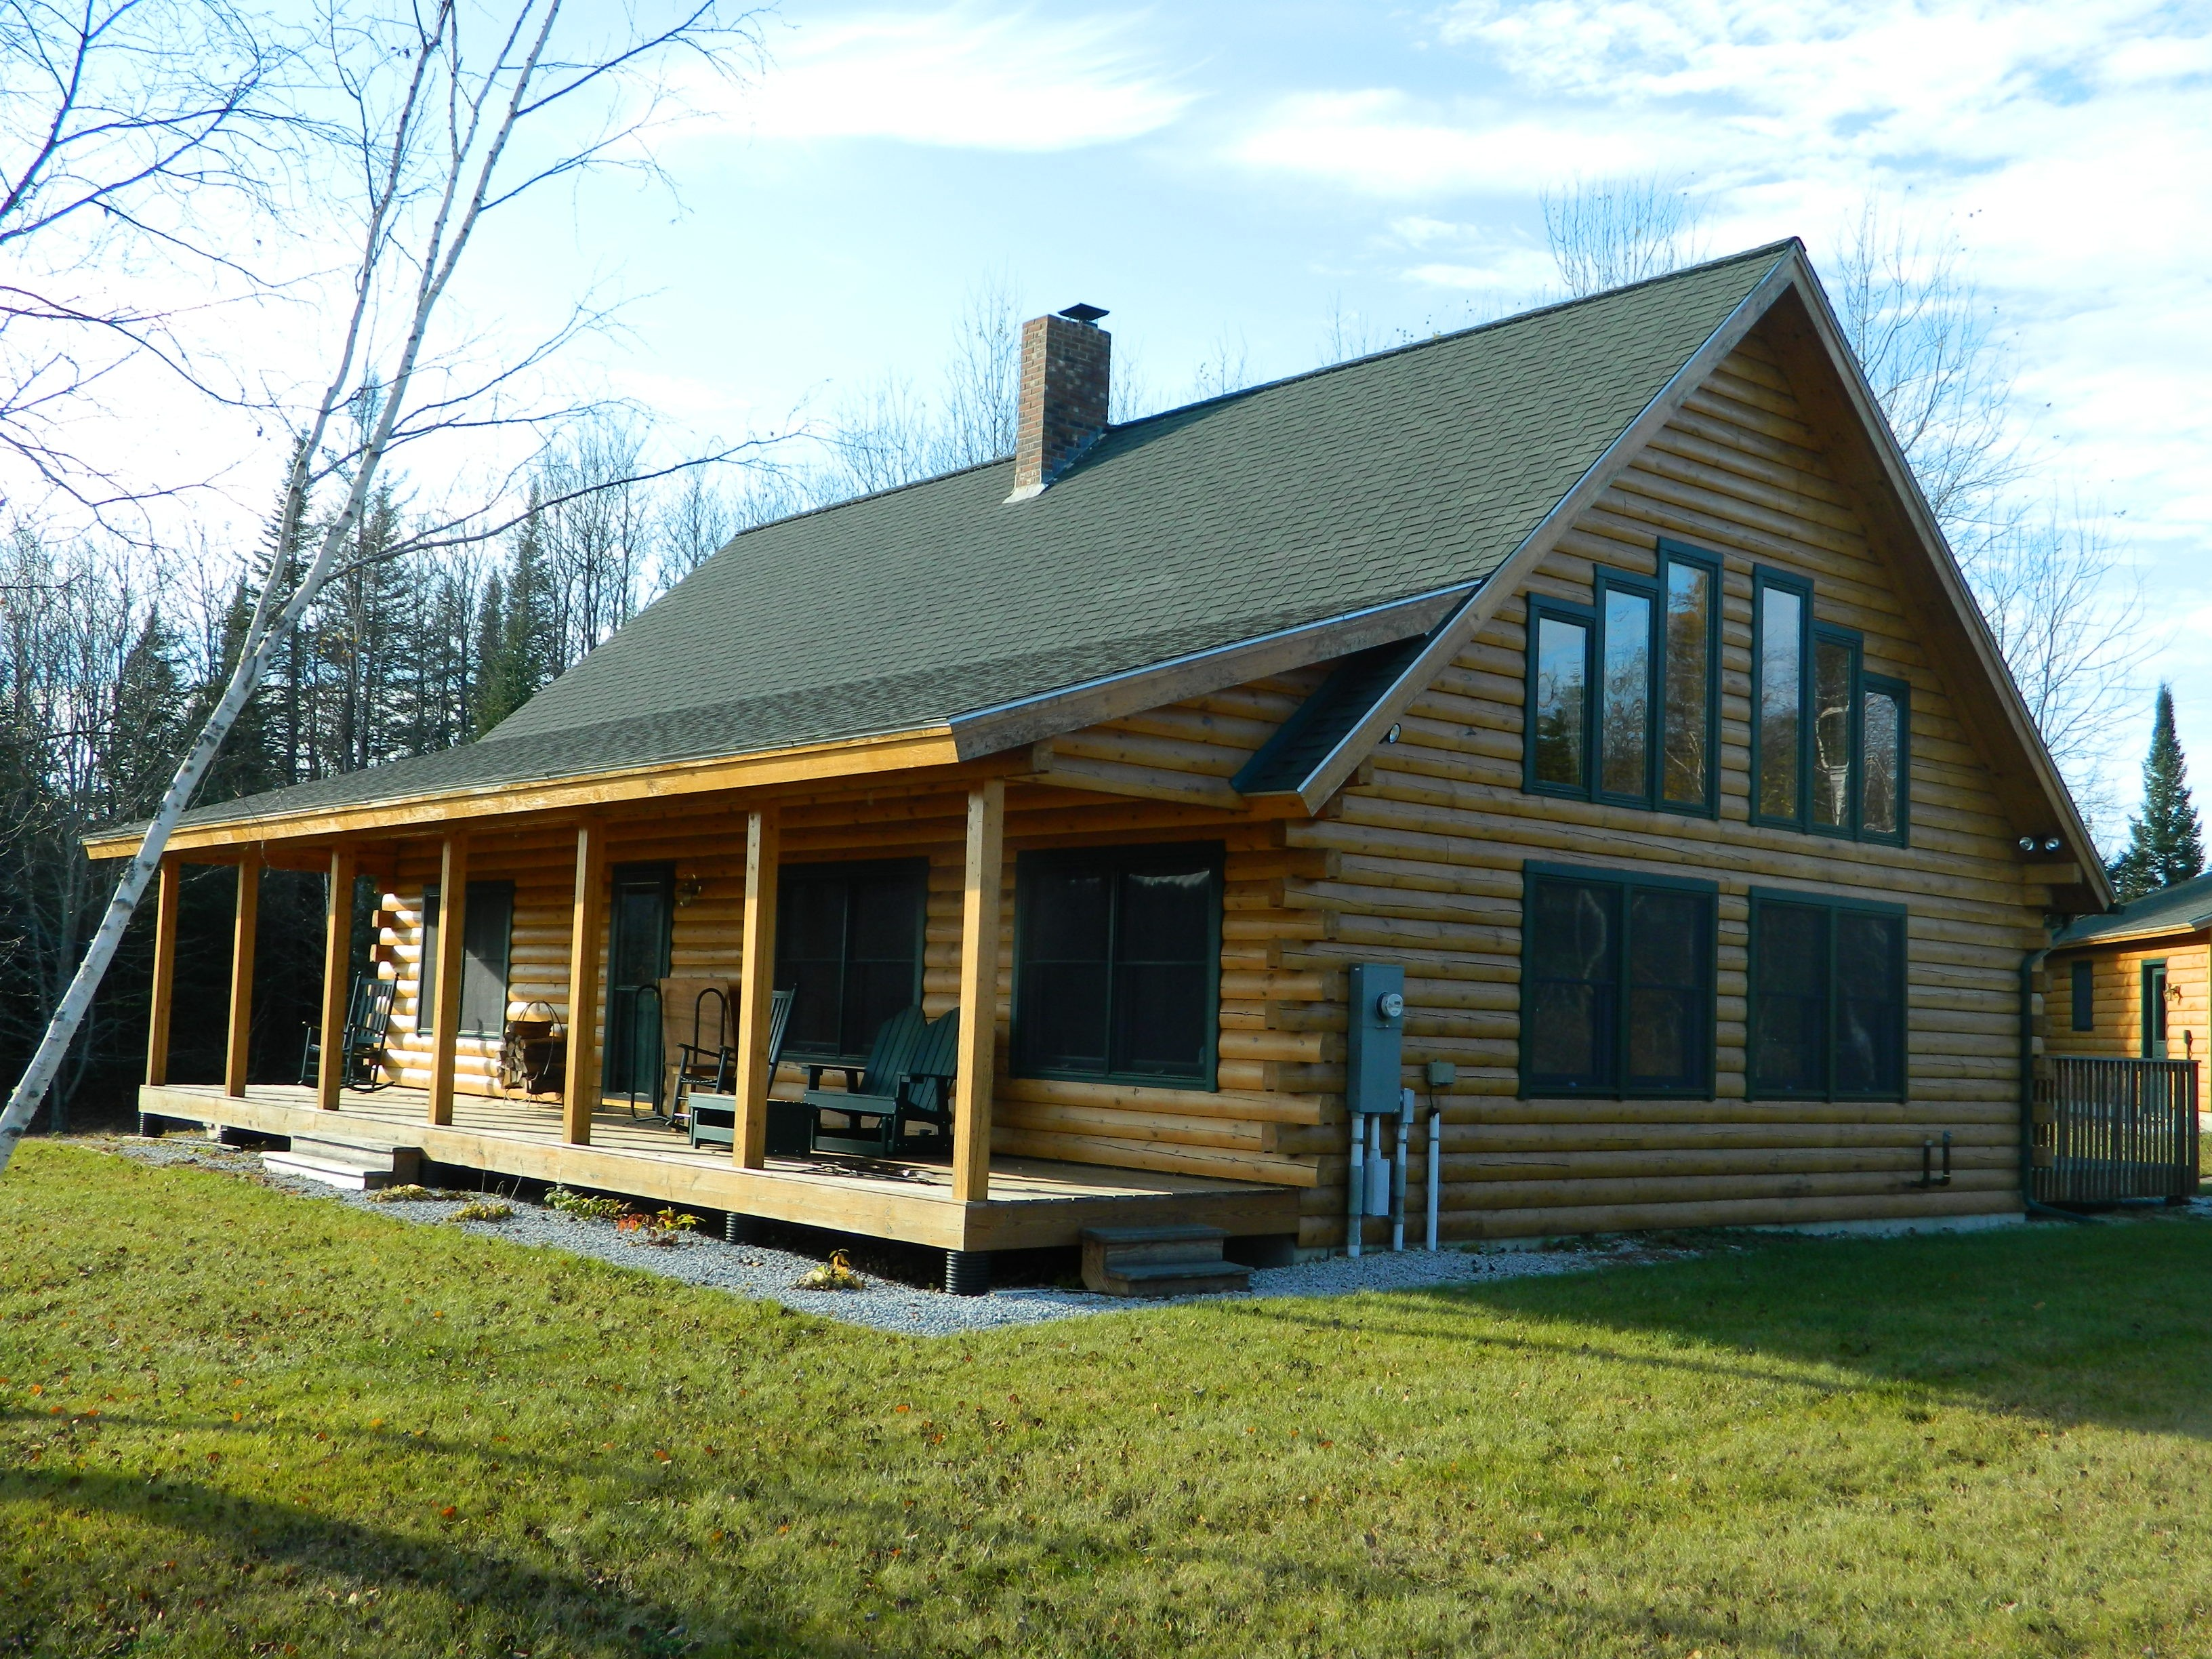 262 Harveys Hollow Rd, Danville, VT 05828